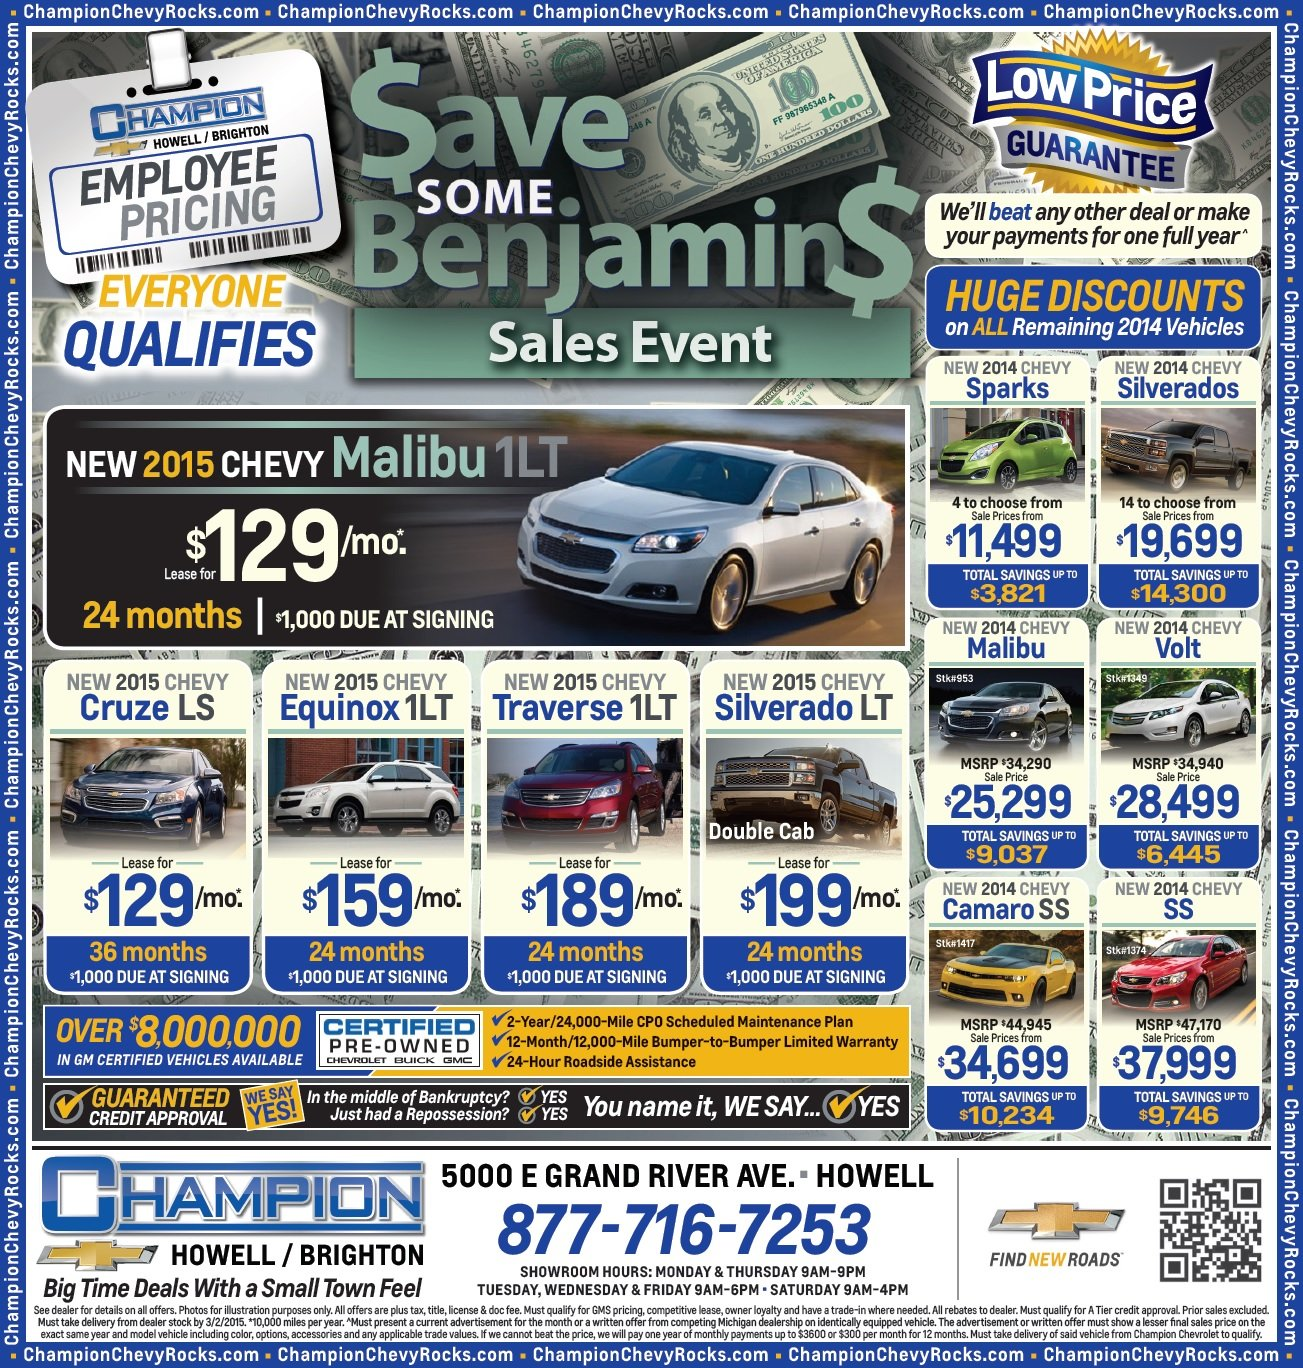 Champion Chevrolet Howell >> Save Some Benjamins Sales Event At Champion Chevrolet Of